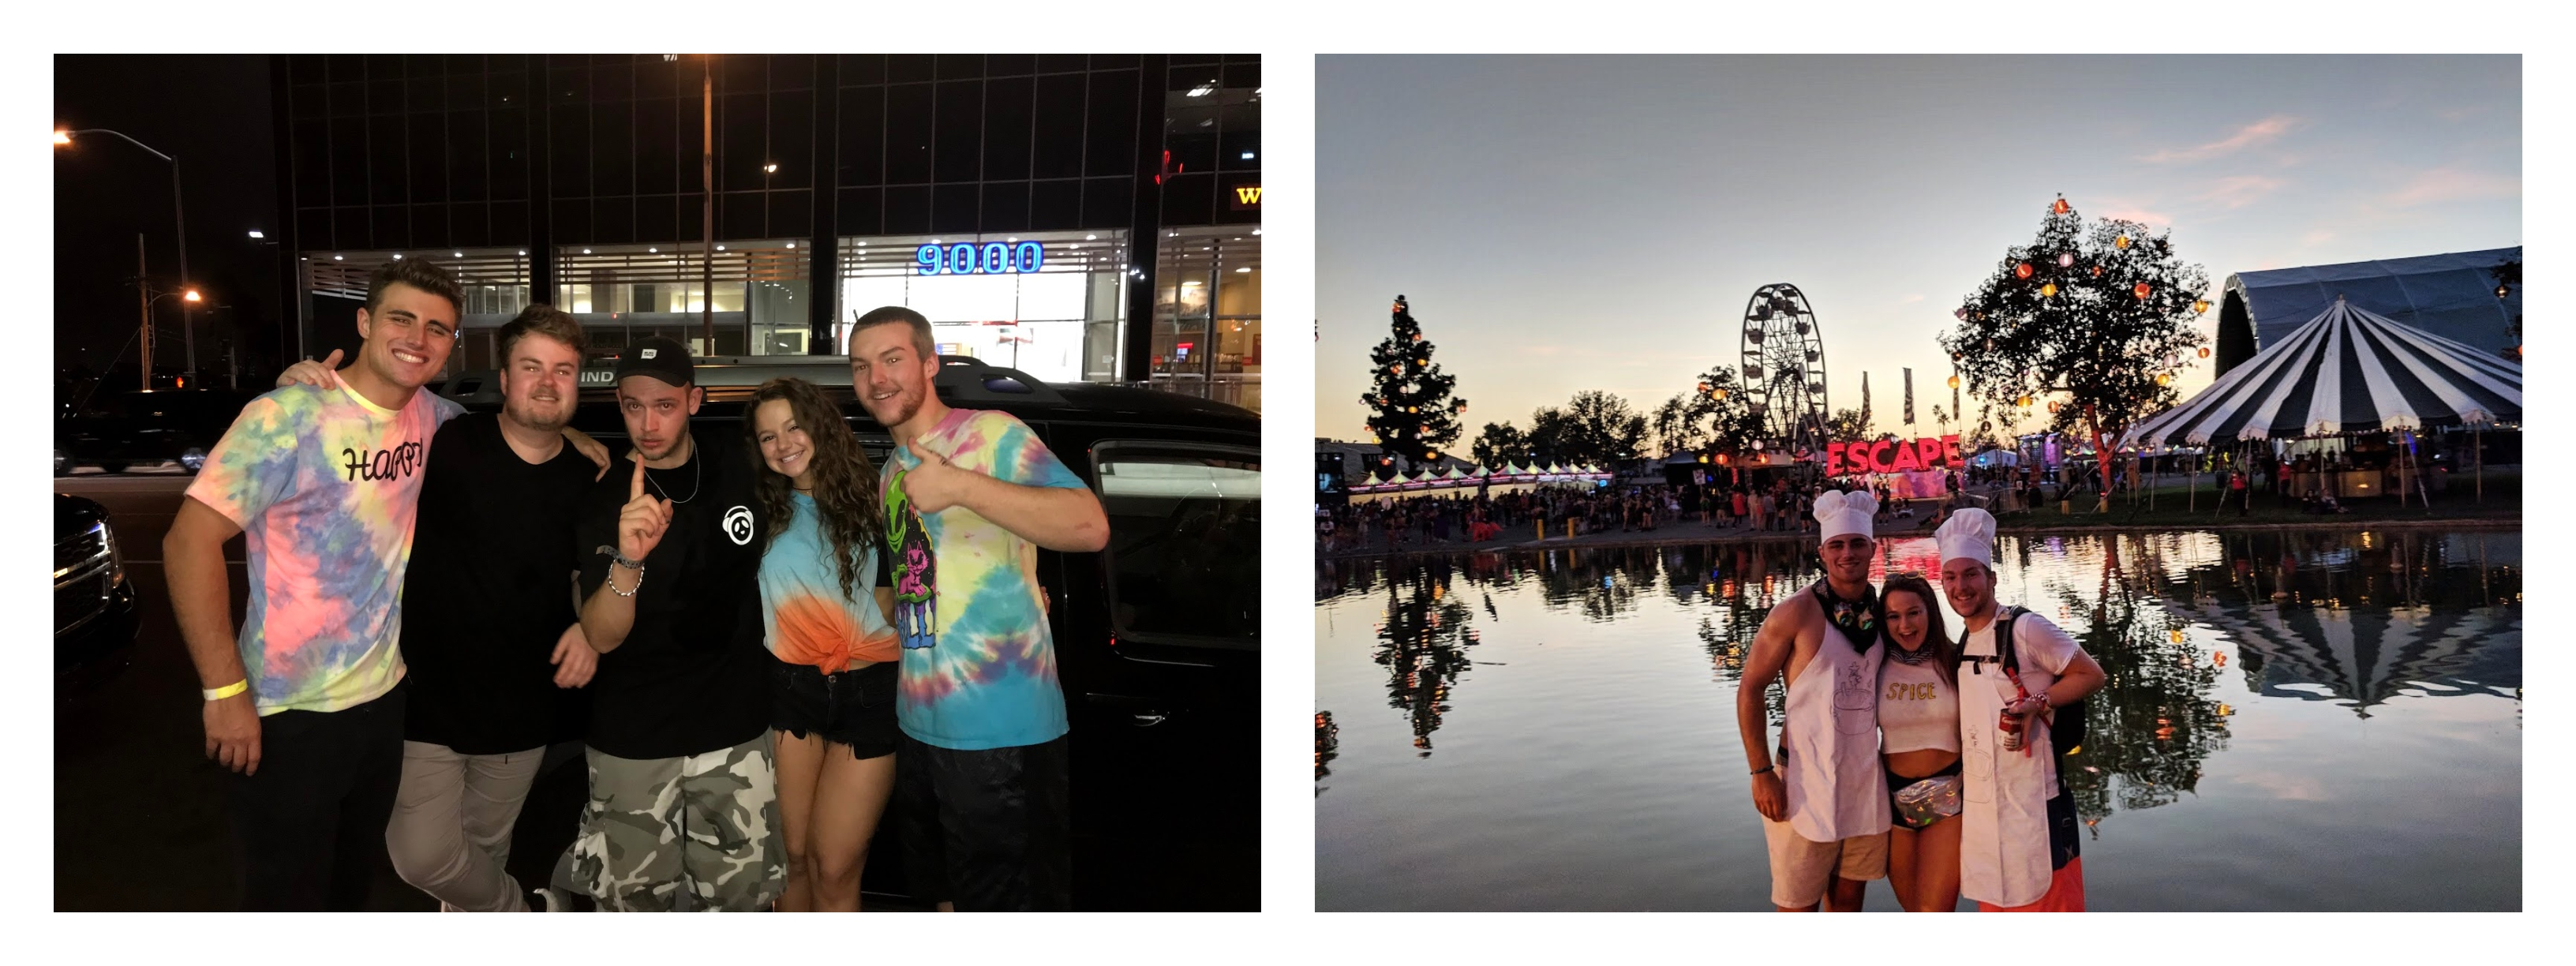 The left photo is three students and two older men who are the DJs from that concert. The right photo is of the same three students at a circus-themed park where a music festival was held.